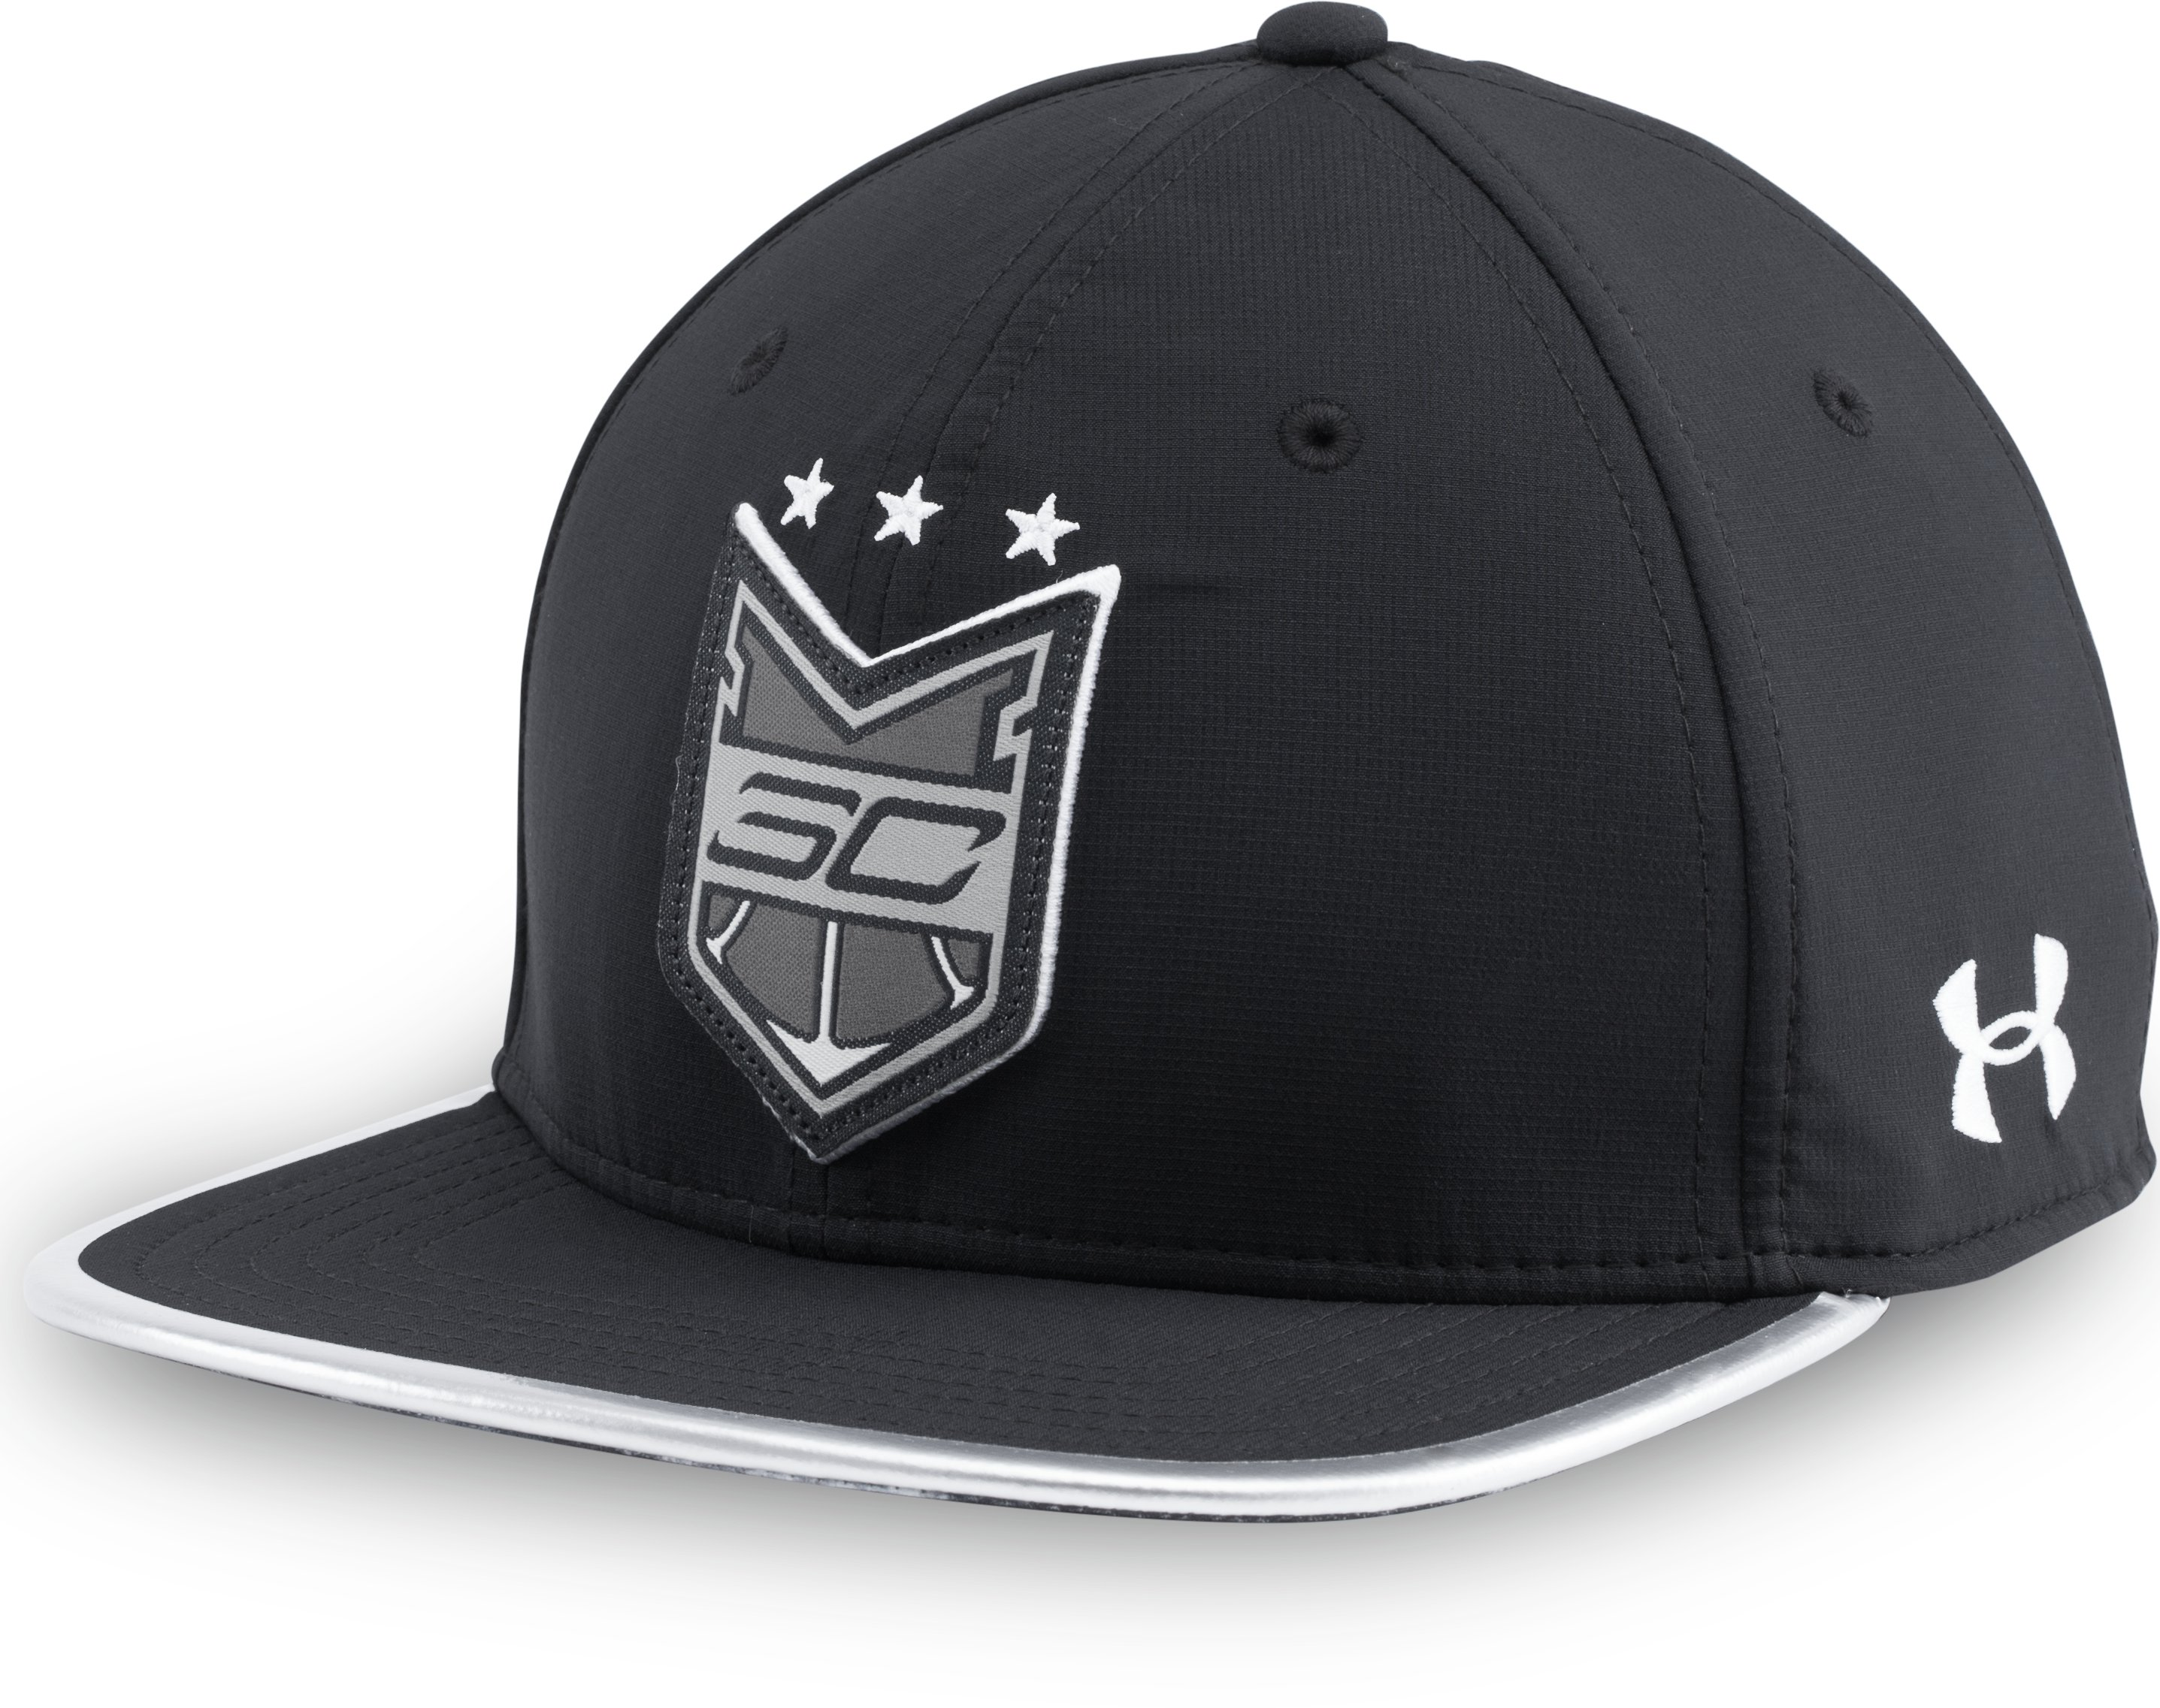 Men's SC30 Crest Snap Back Cap, Black